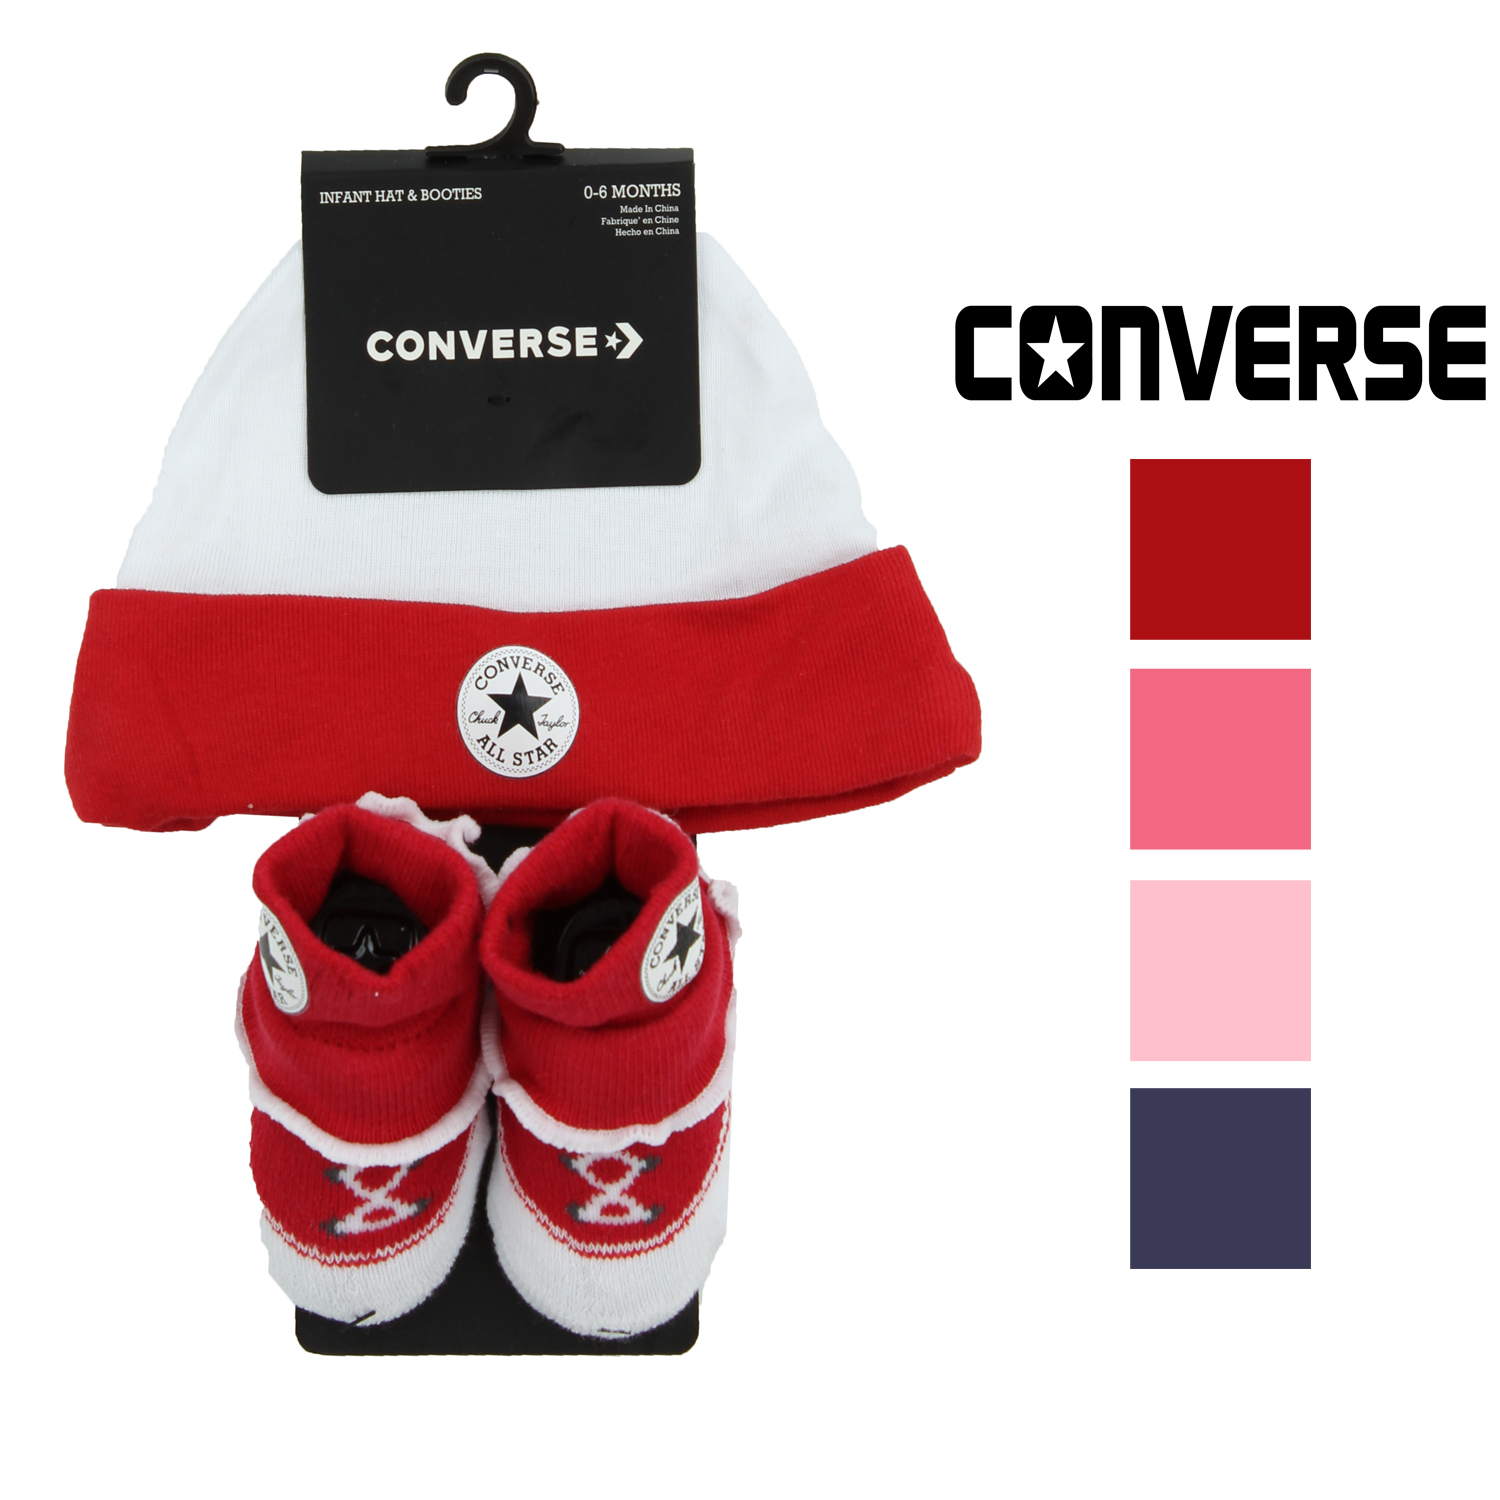 Converse Infant Hat and Frilly Bootie